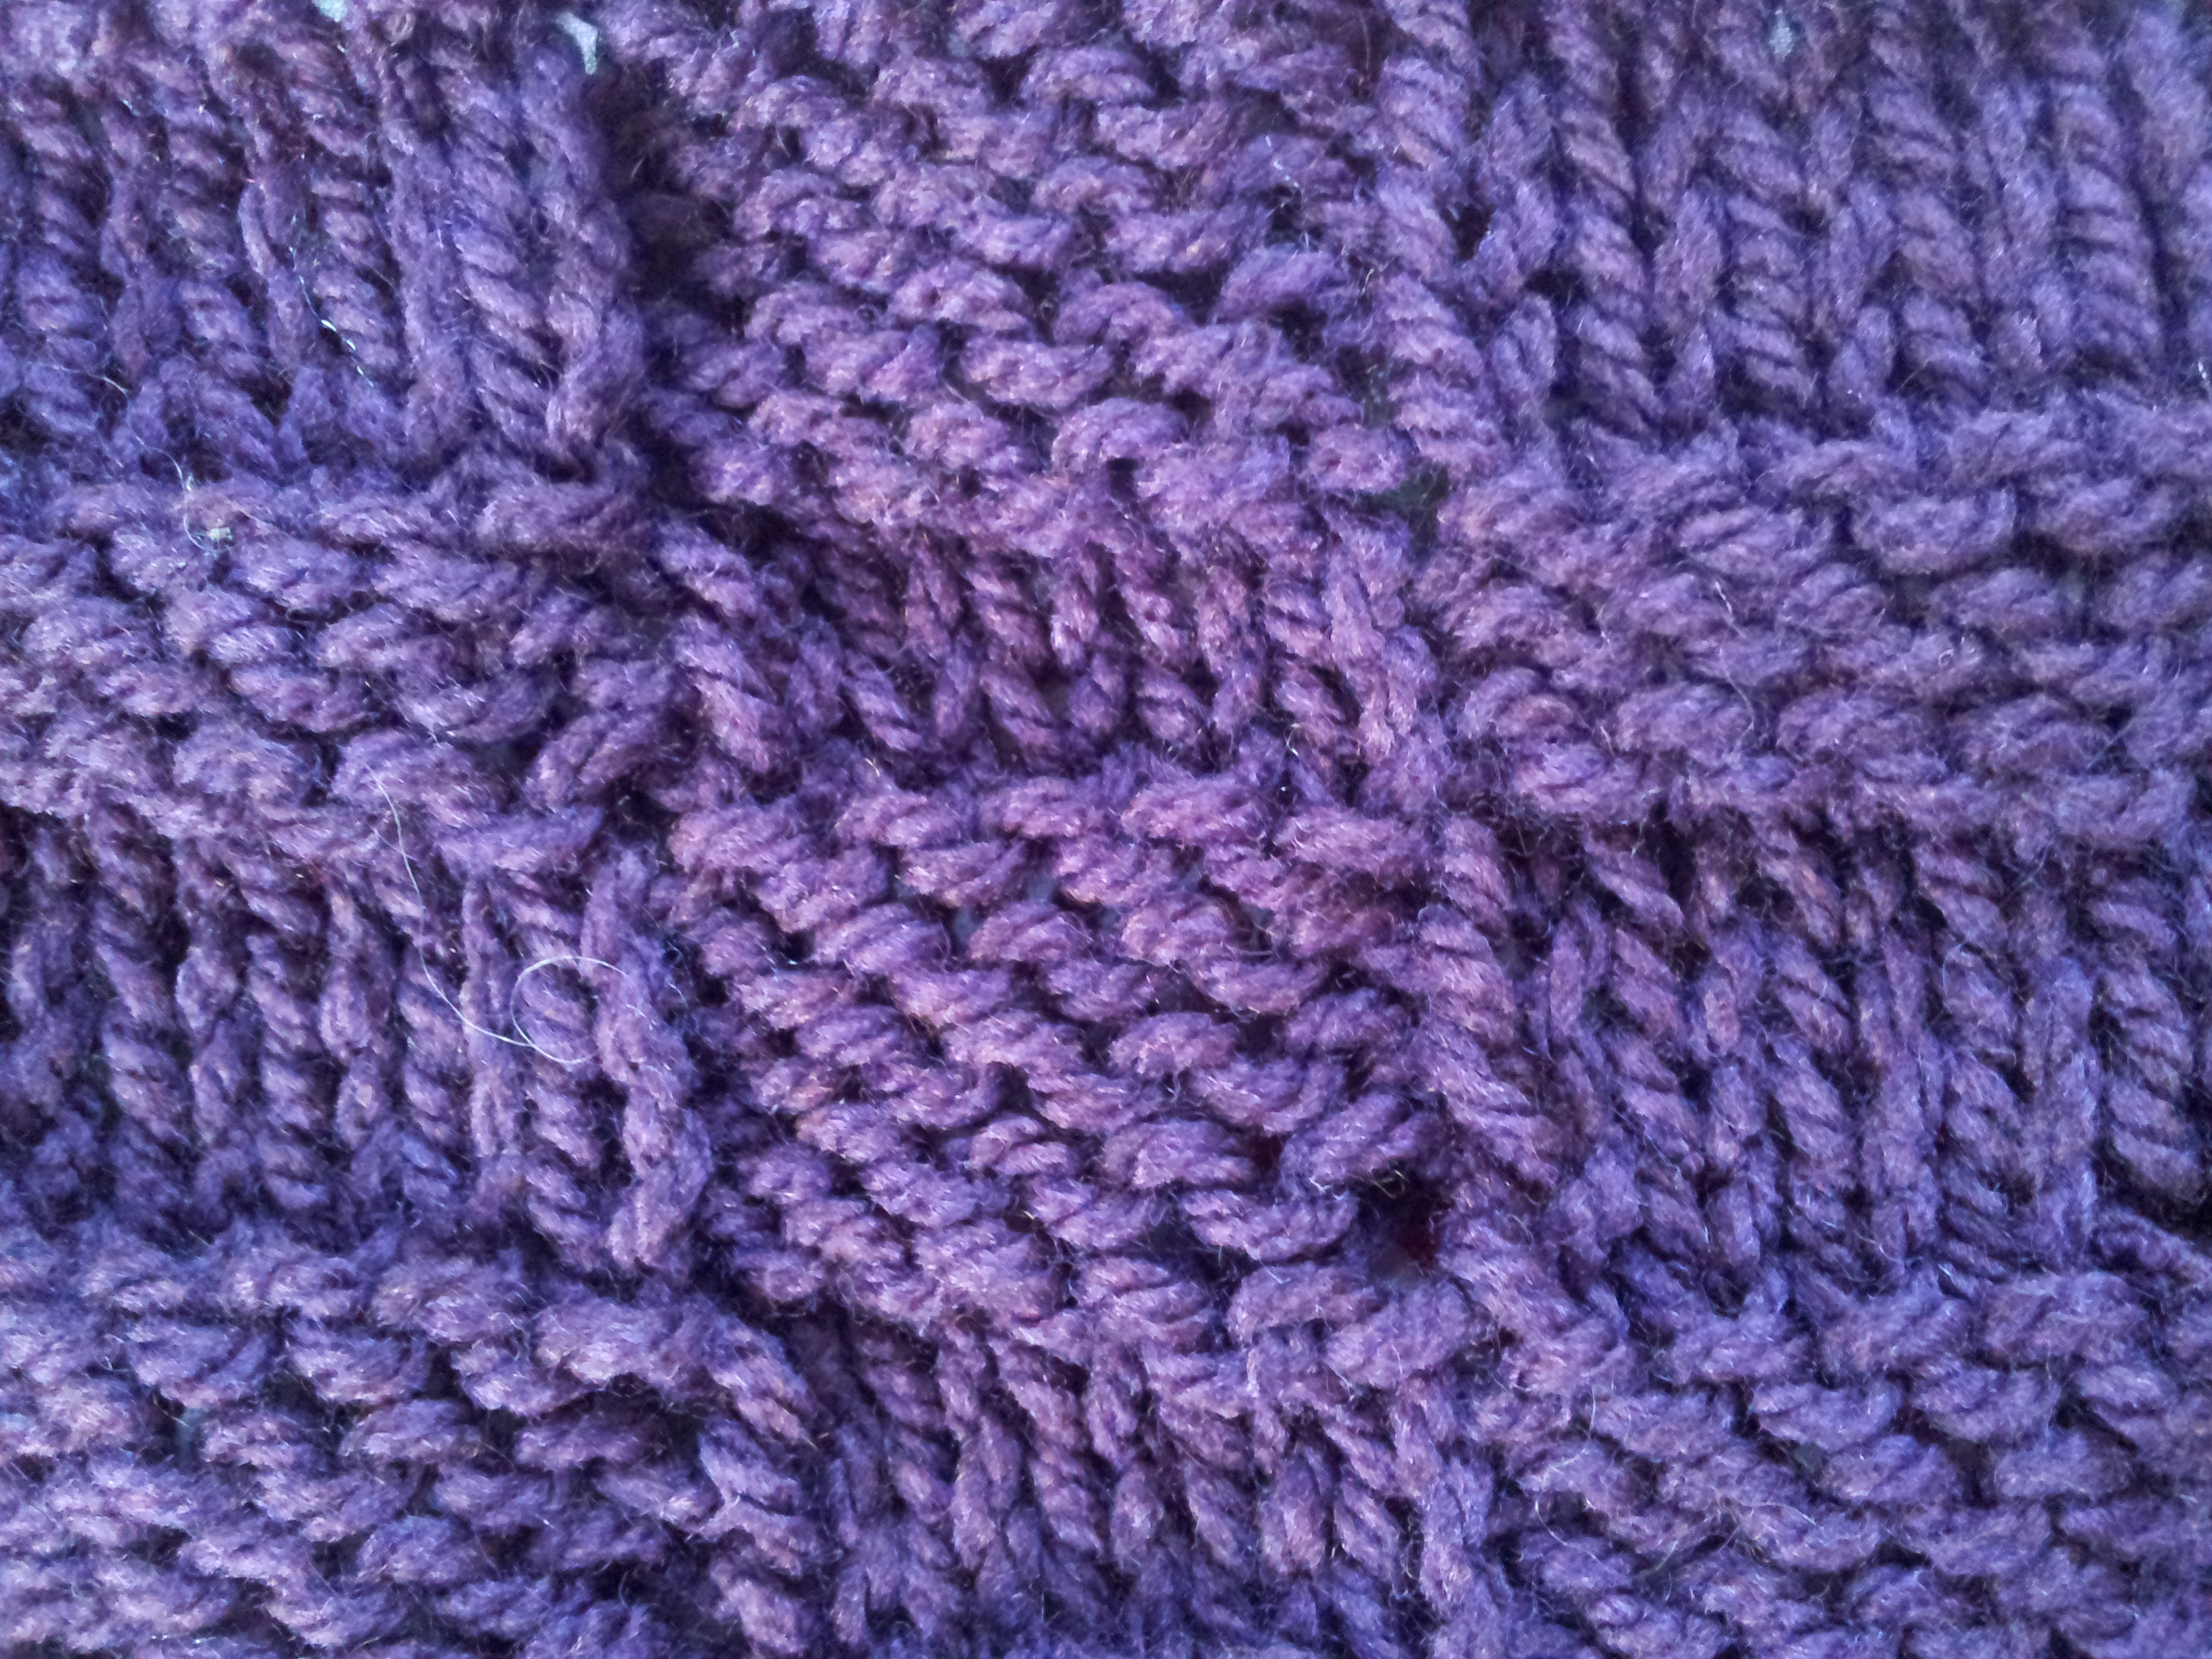 Easy Cast On Knitting Stitches : Basic Knitted Fabrics thestitchsharer